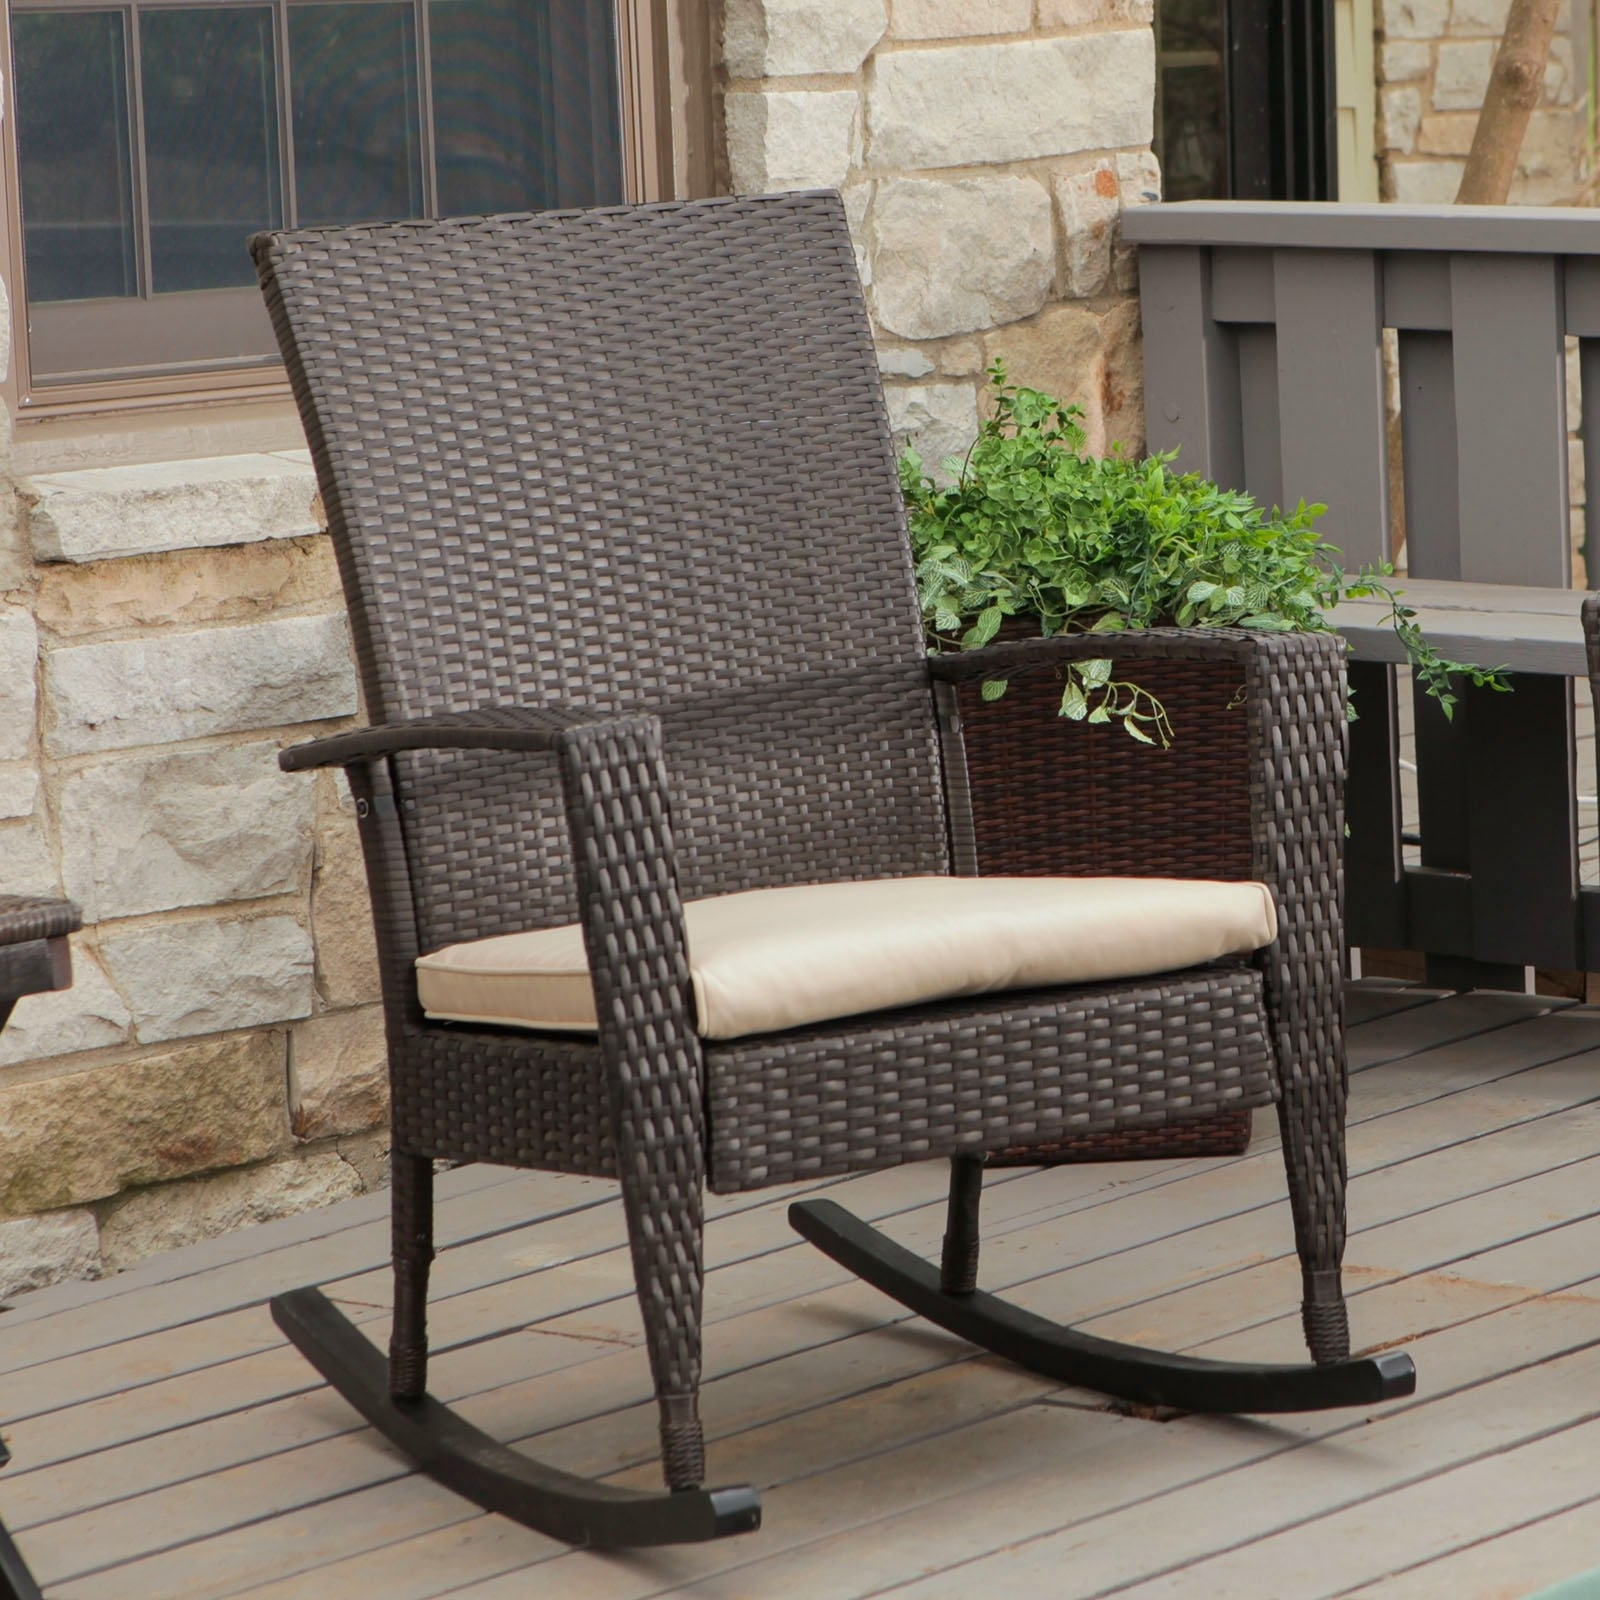 Decorating Modern Lawn Chairs Modern Balcony Furniture Modern Patio Intended For Patio Rocking Chairs Sets (View 4 of 15)